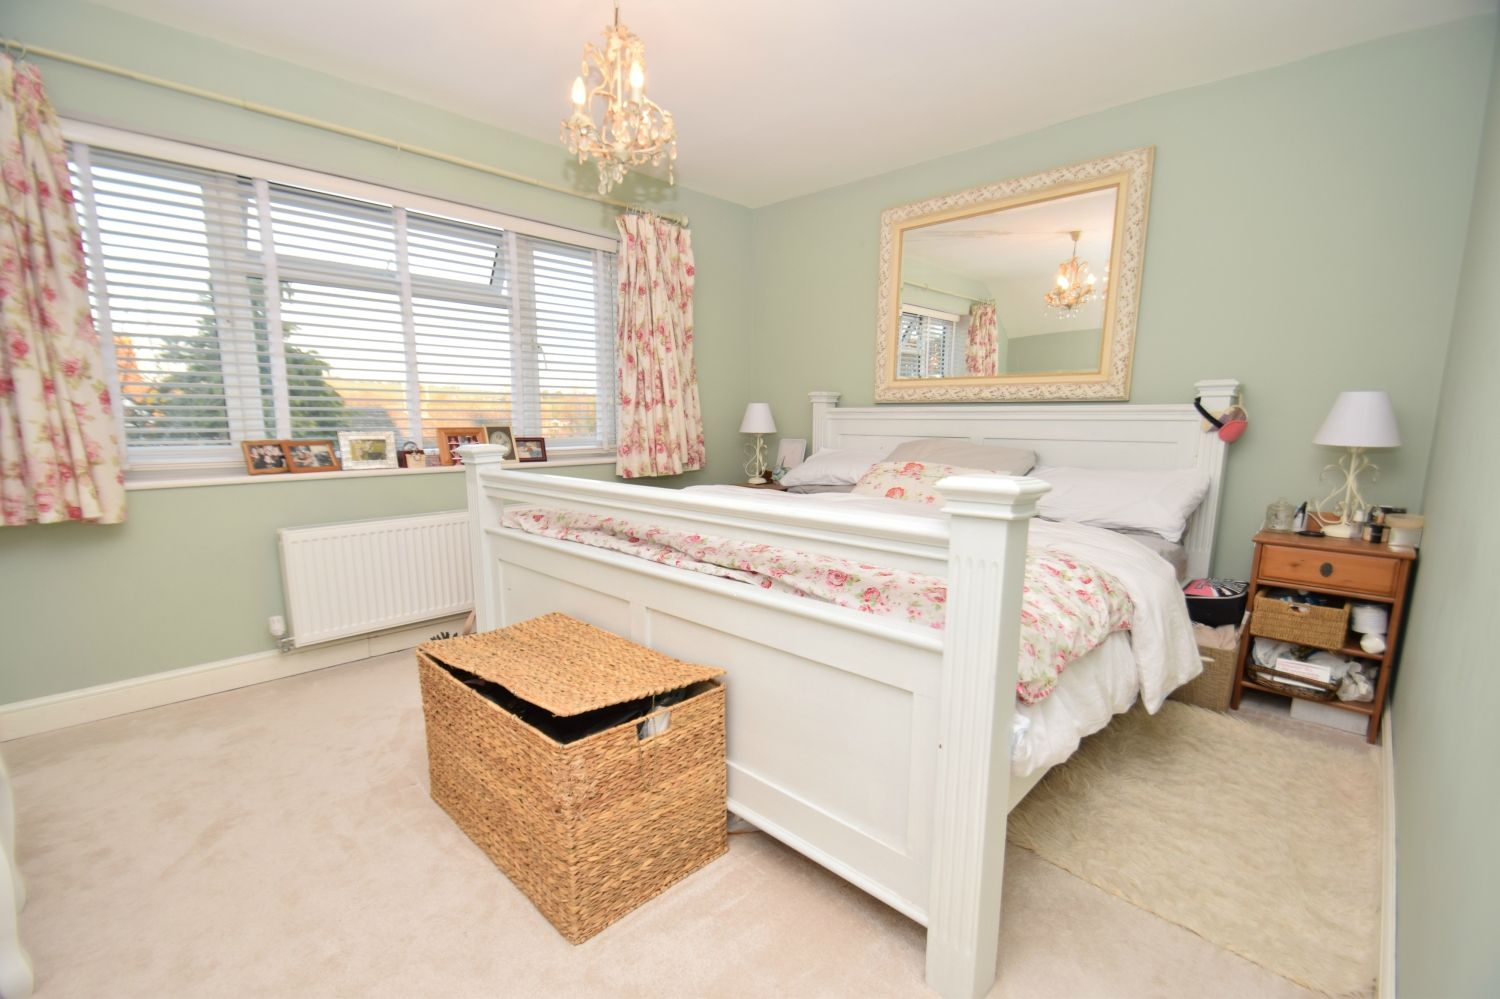 4 bed semi-detached for sale in Upland Grove, Bromsgrove, B61  - Property Image 17